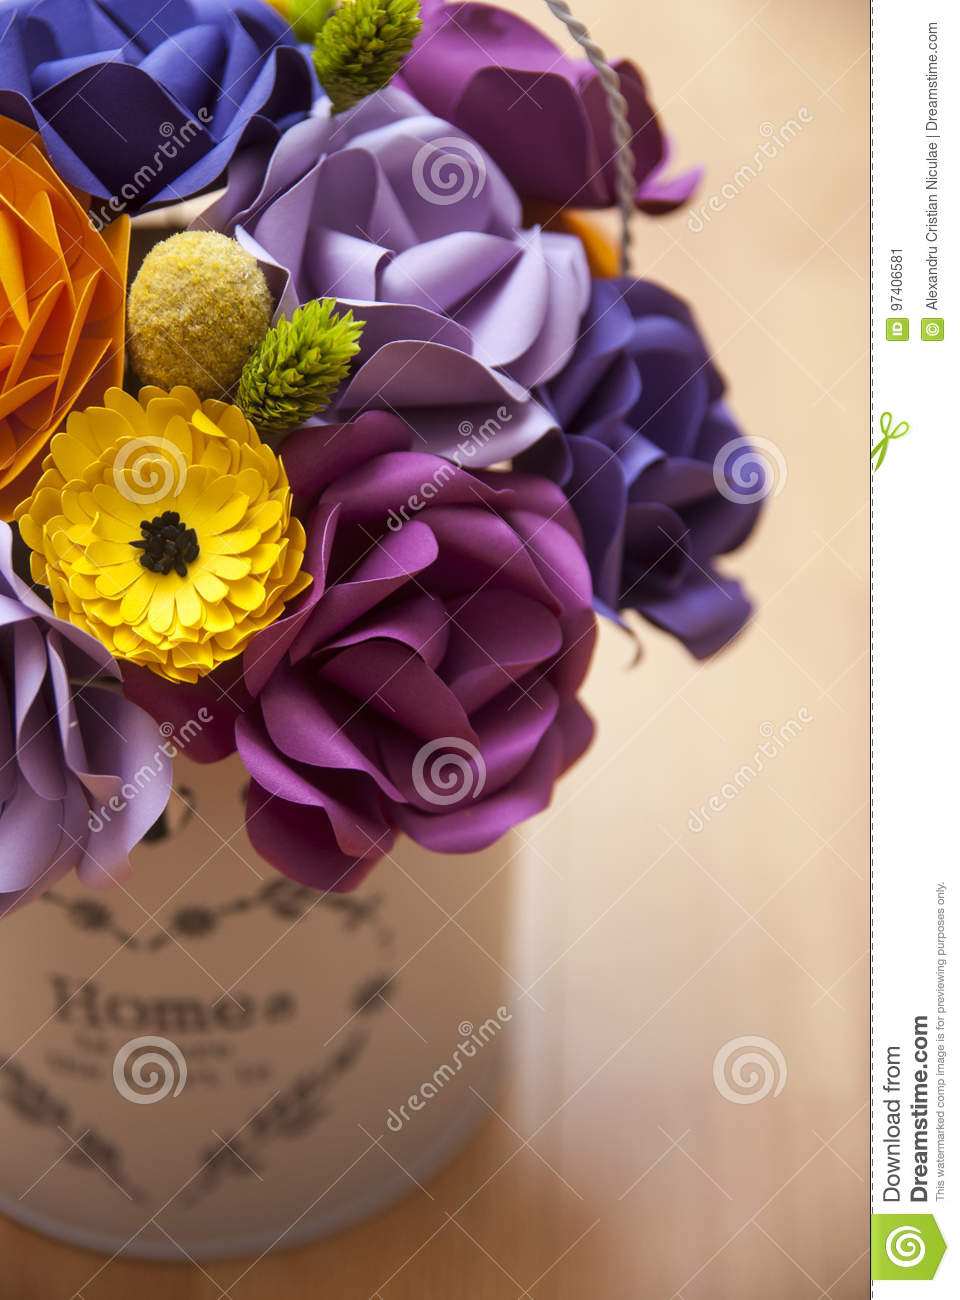 Colorful Paper Flowers In A Small White Bucket Stock Image Image Of Colorful Arts 97406581